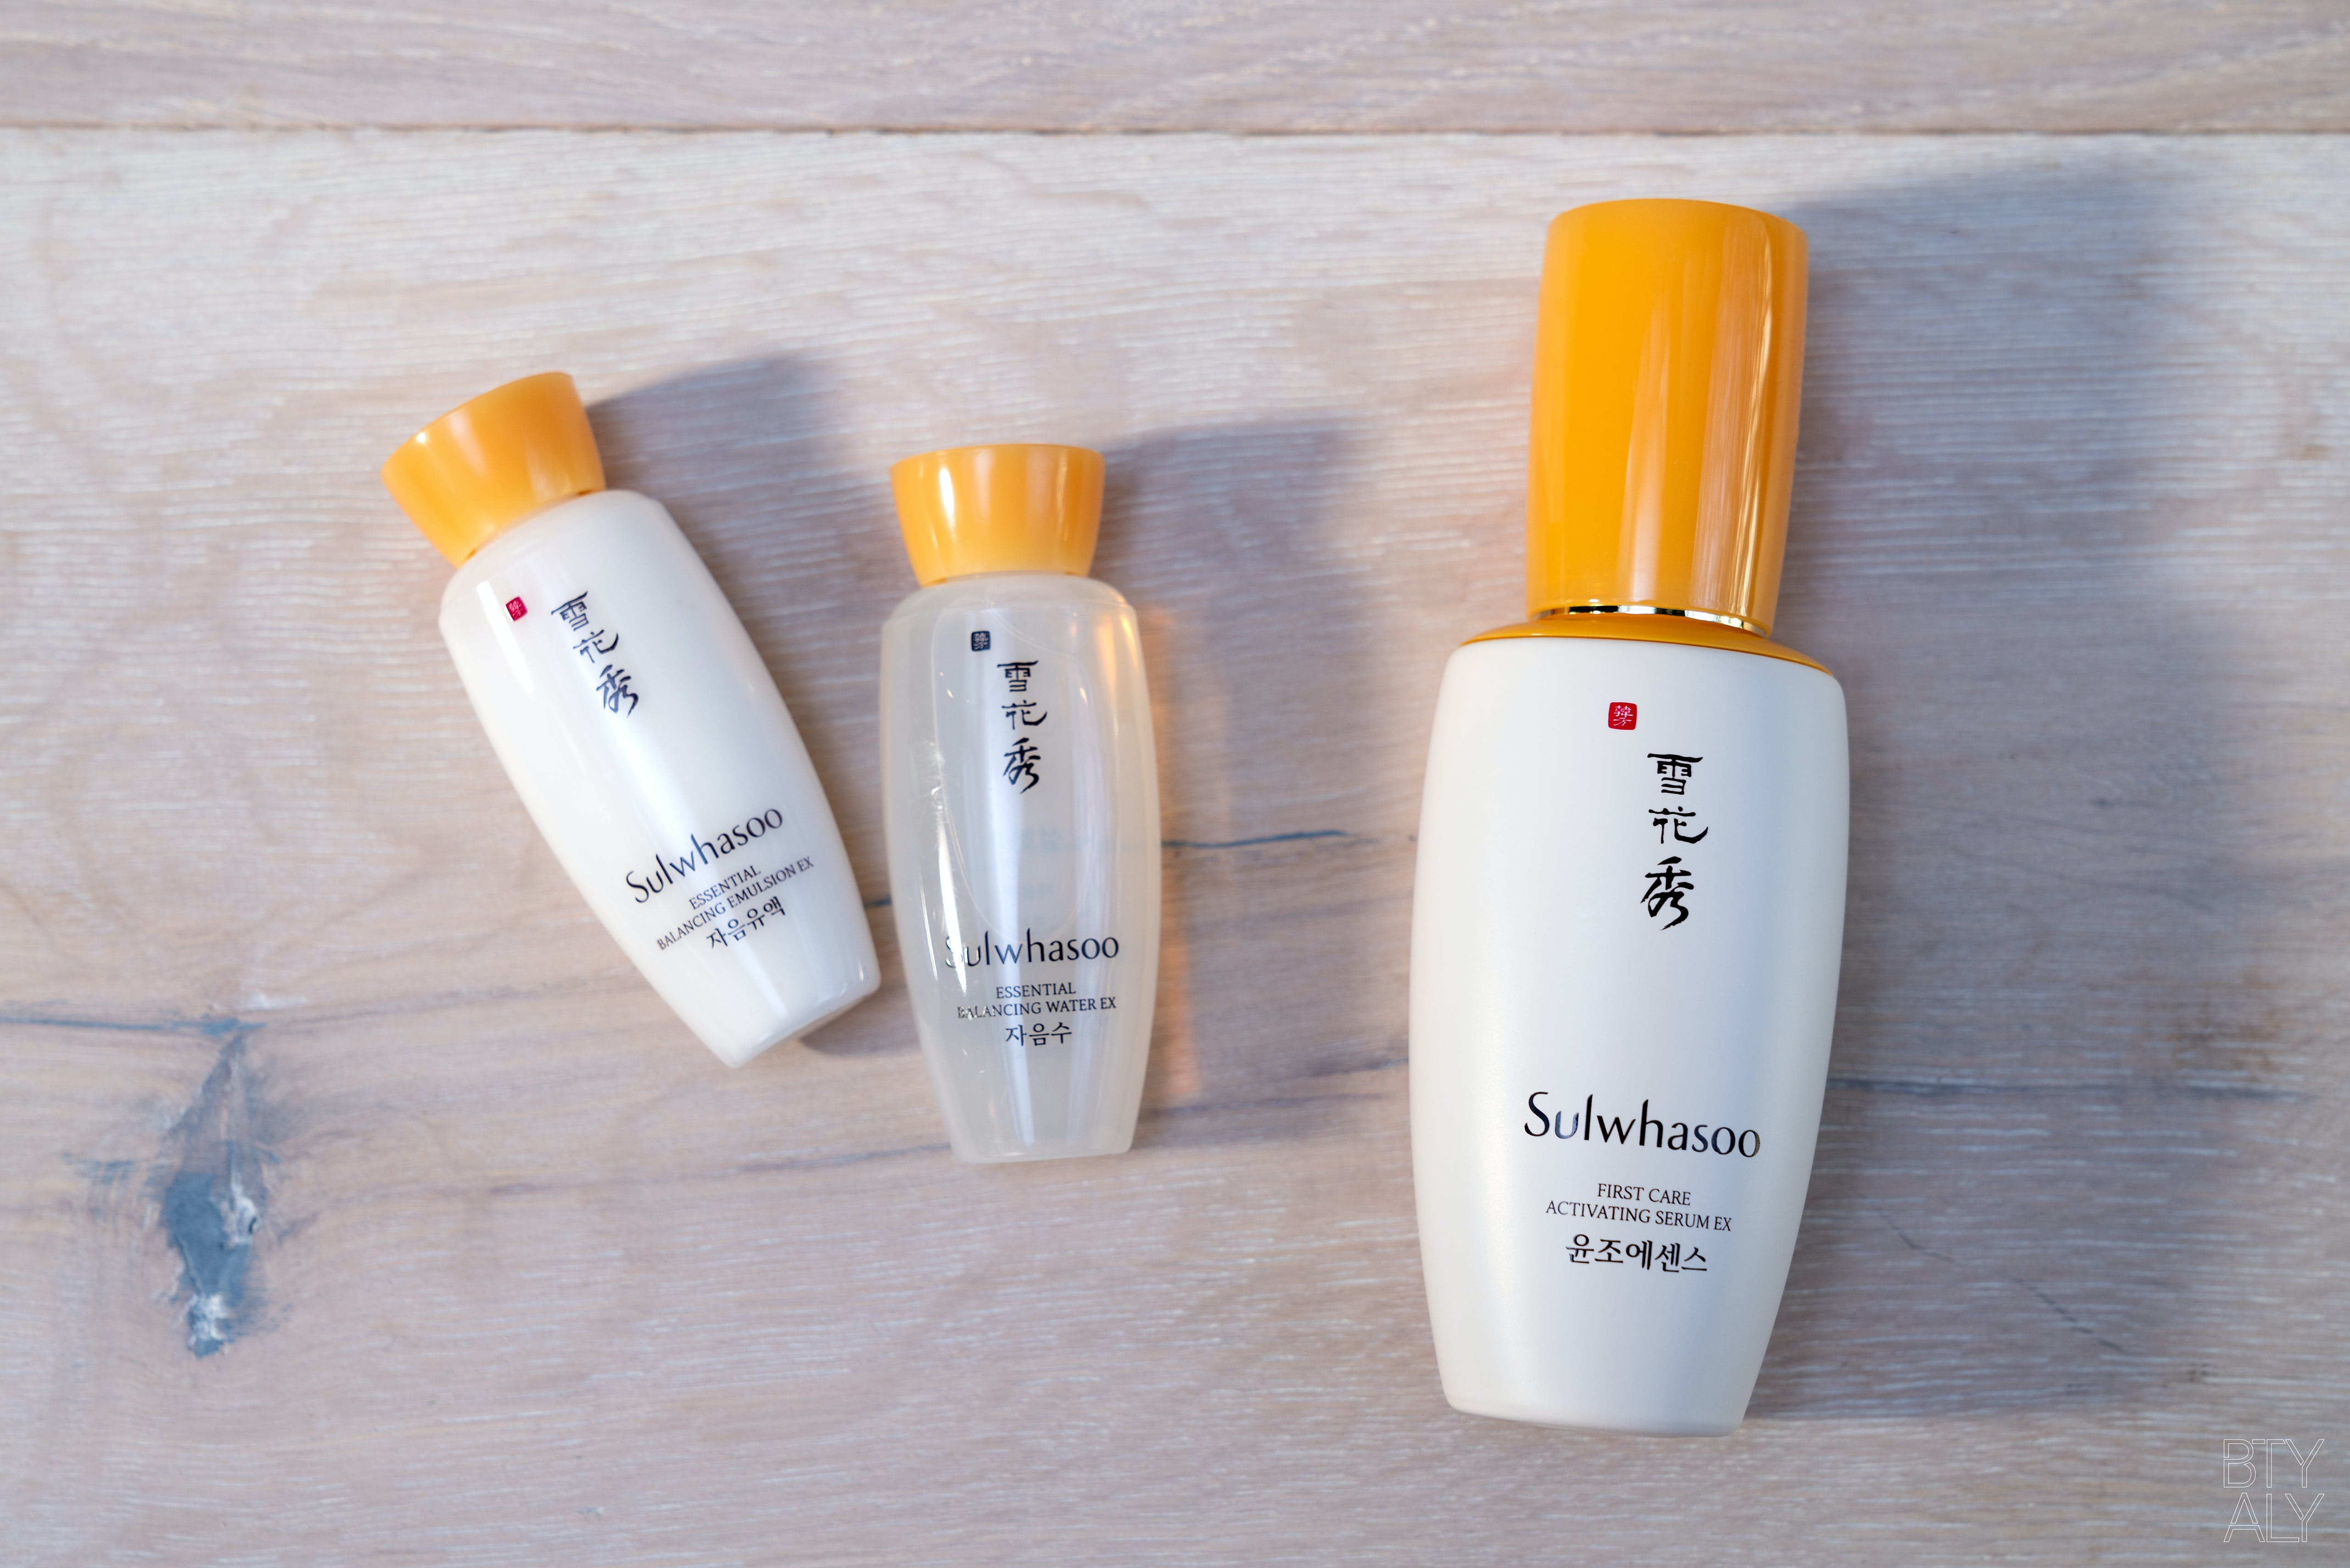 Sulwhasoo First Care Activating Serum EX, Essential Balancing Water EX, Essential Balancing Emulsion EX